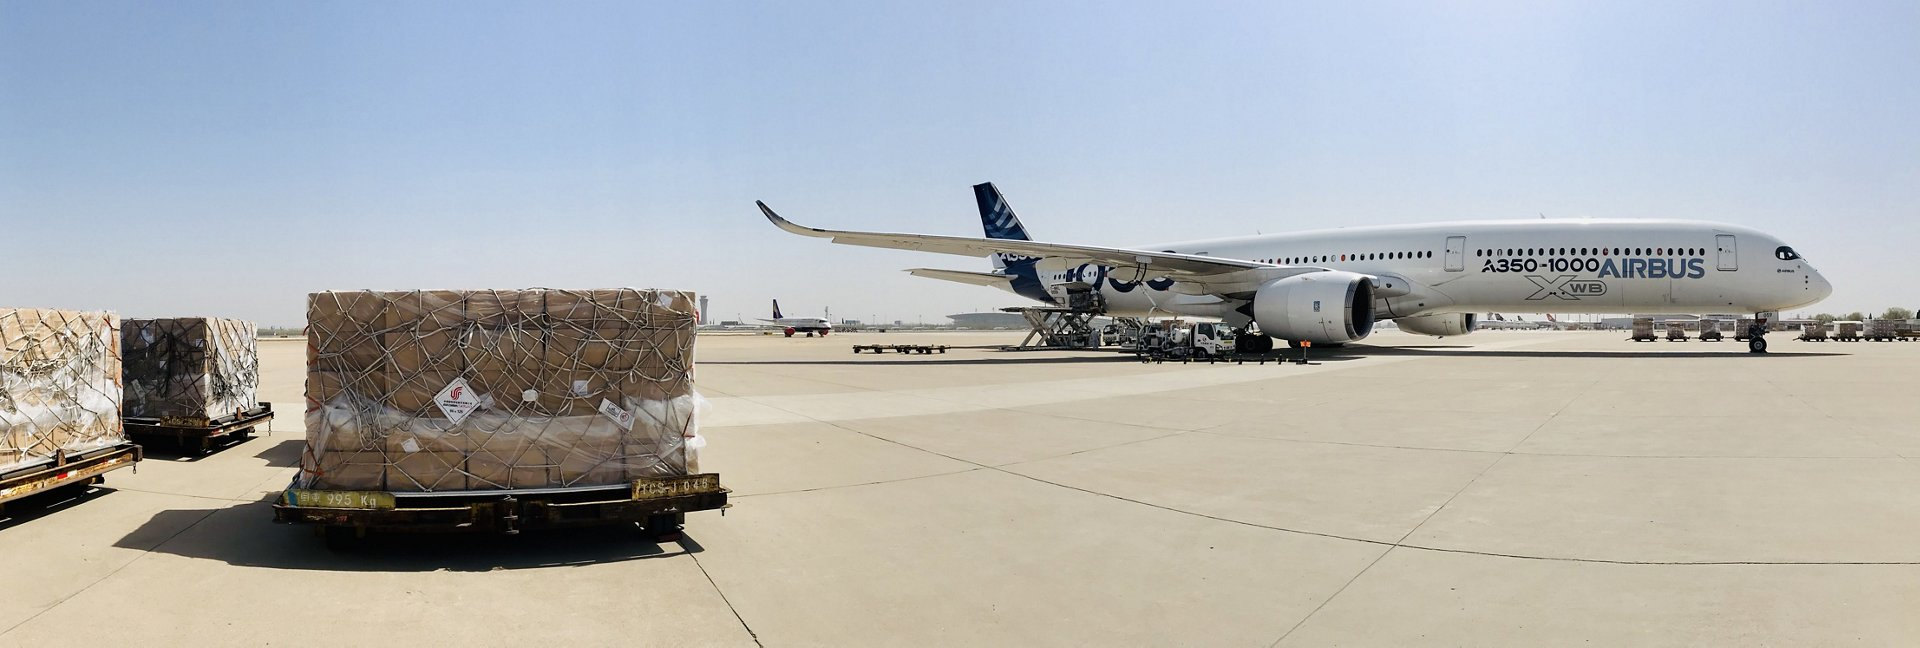 This wide-angle photo shows the A350-1000 in Tianjin, China with a shipment of protective face masks in the foreground, ready for loading and delivery to Europe